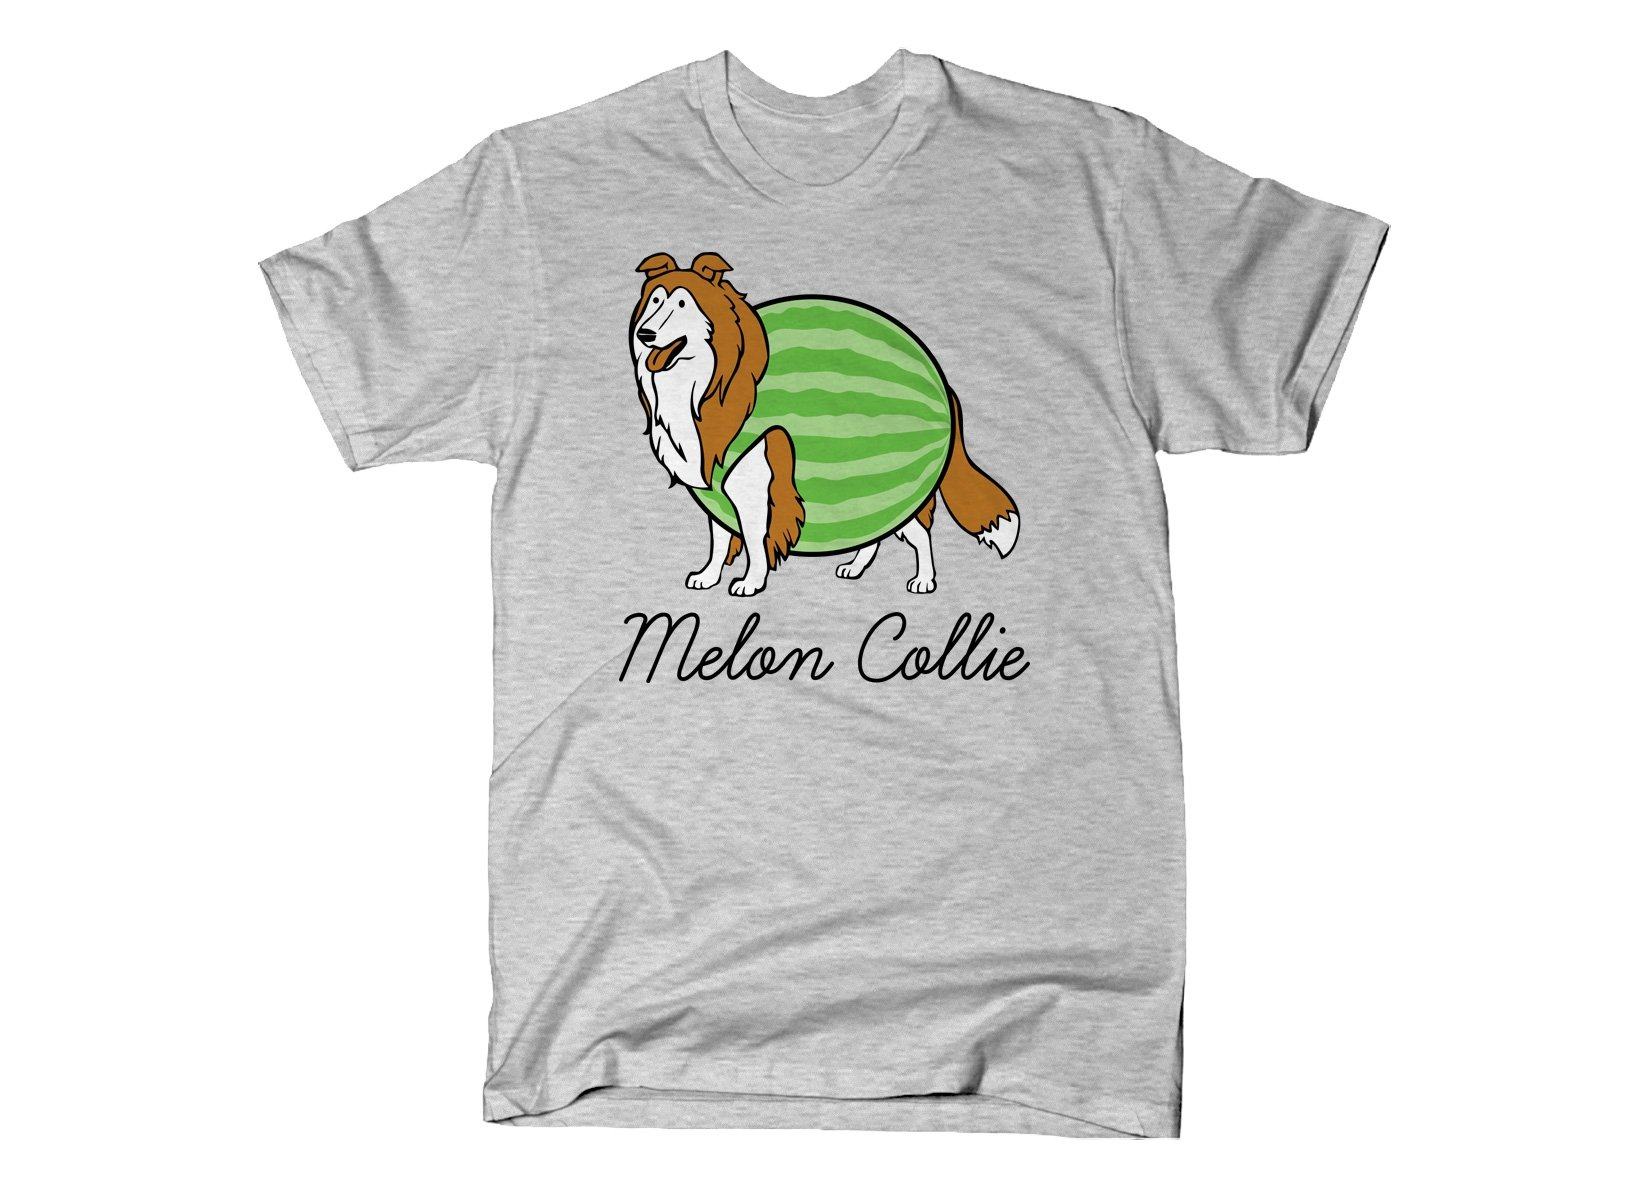 Melon Collie on Mens T-Shirt